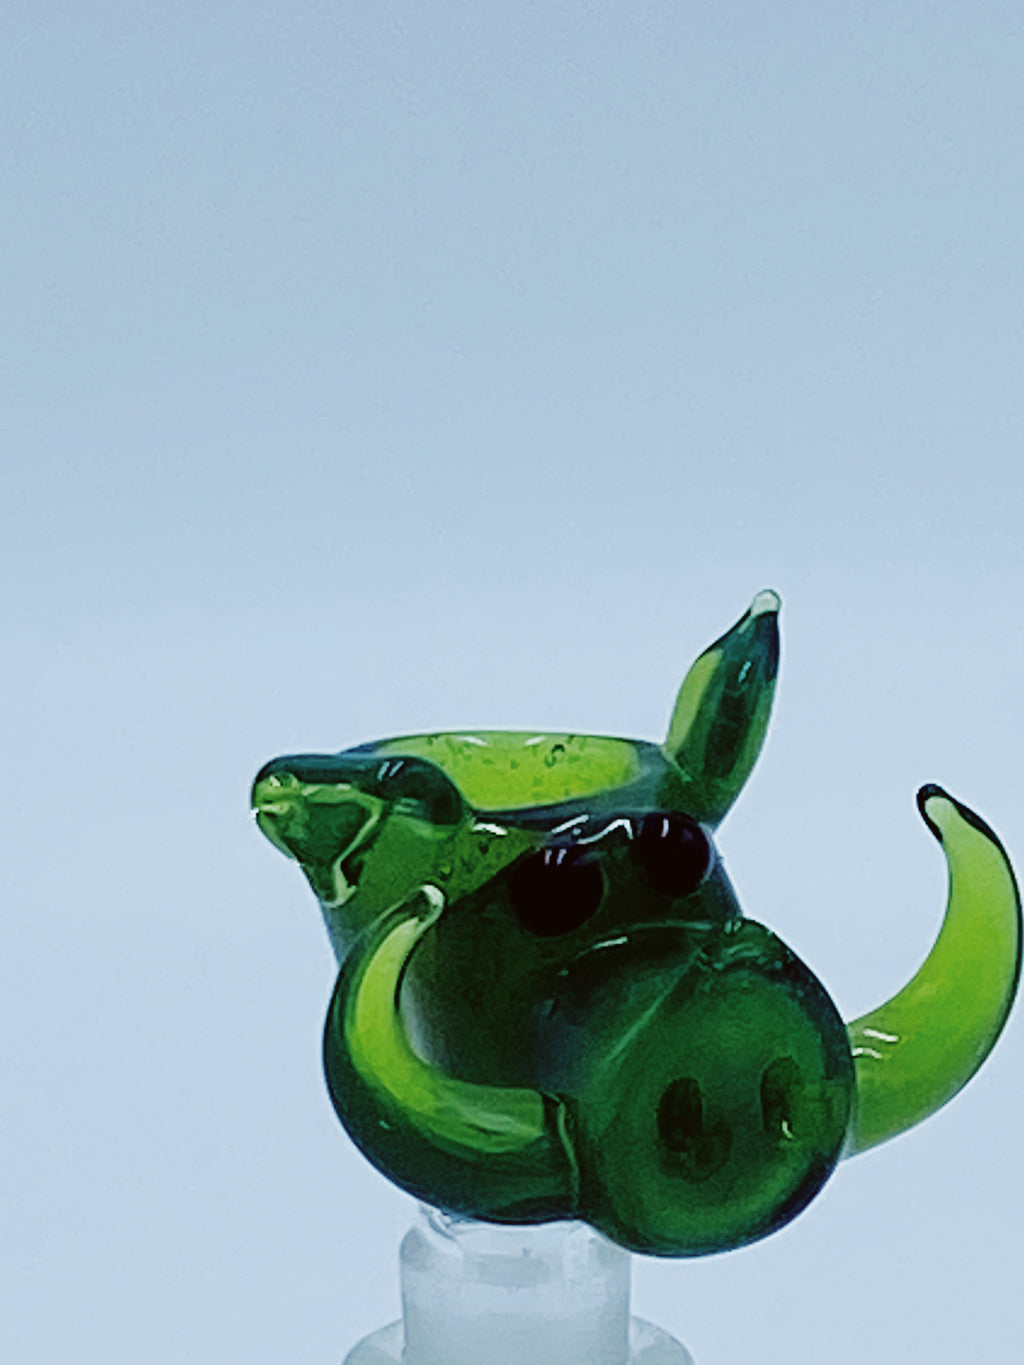 TEAR E 14MM BOAR BOWL - Smoke Country - Land of the artistic glass blown bongs